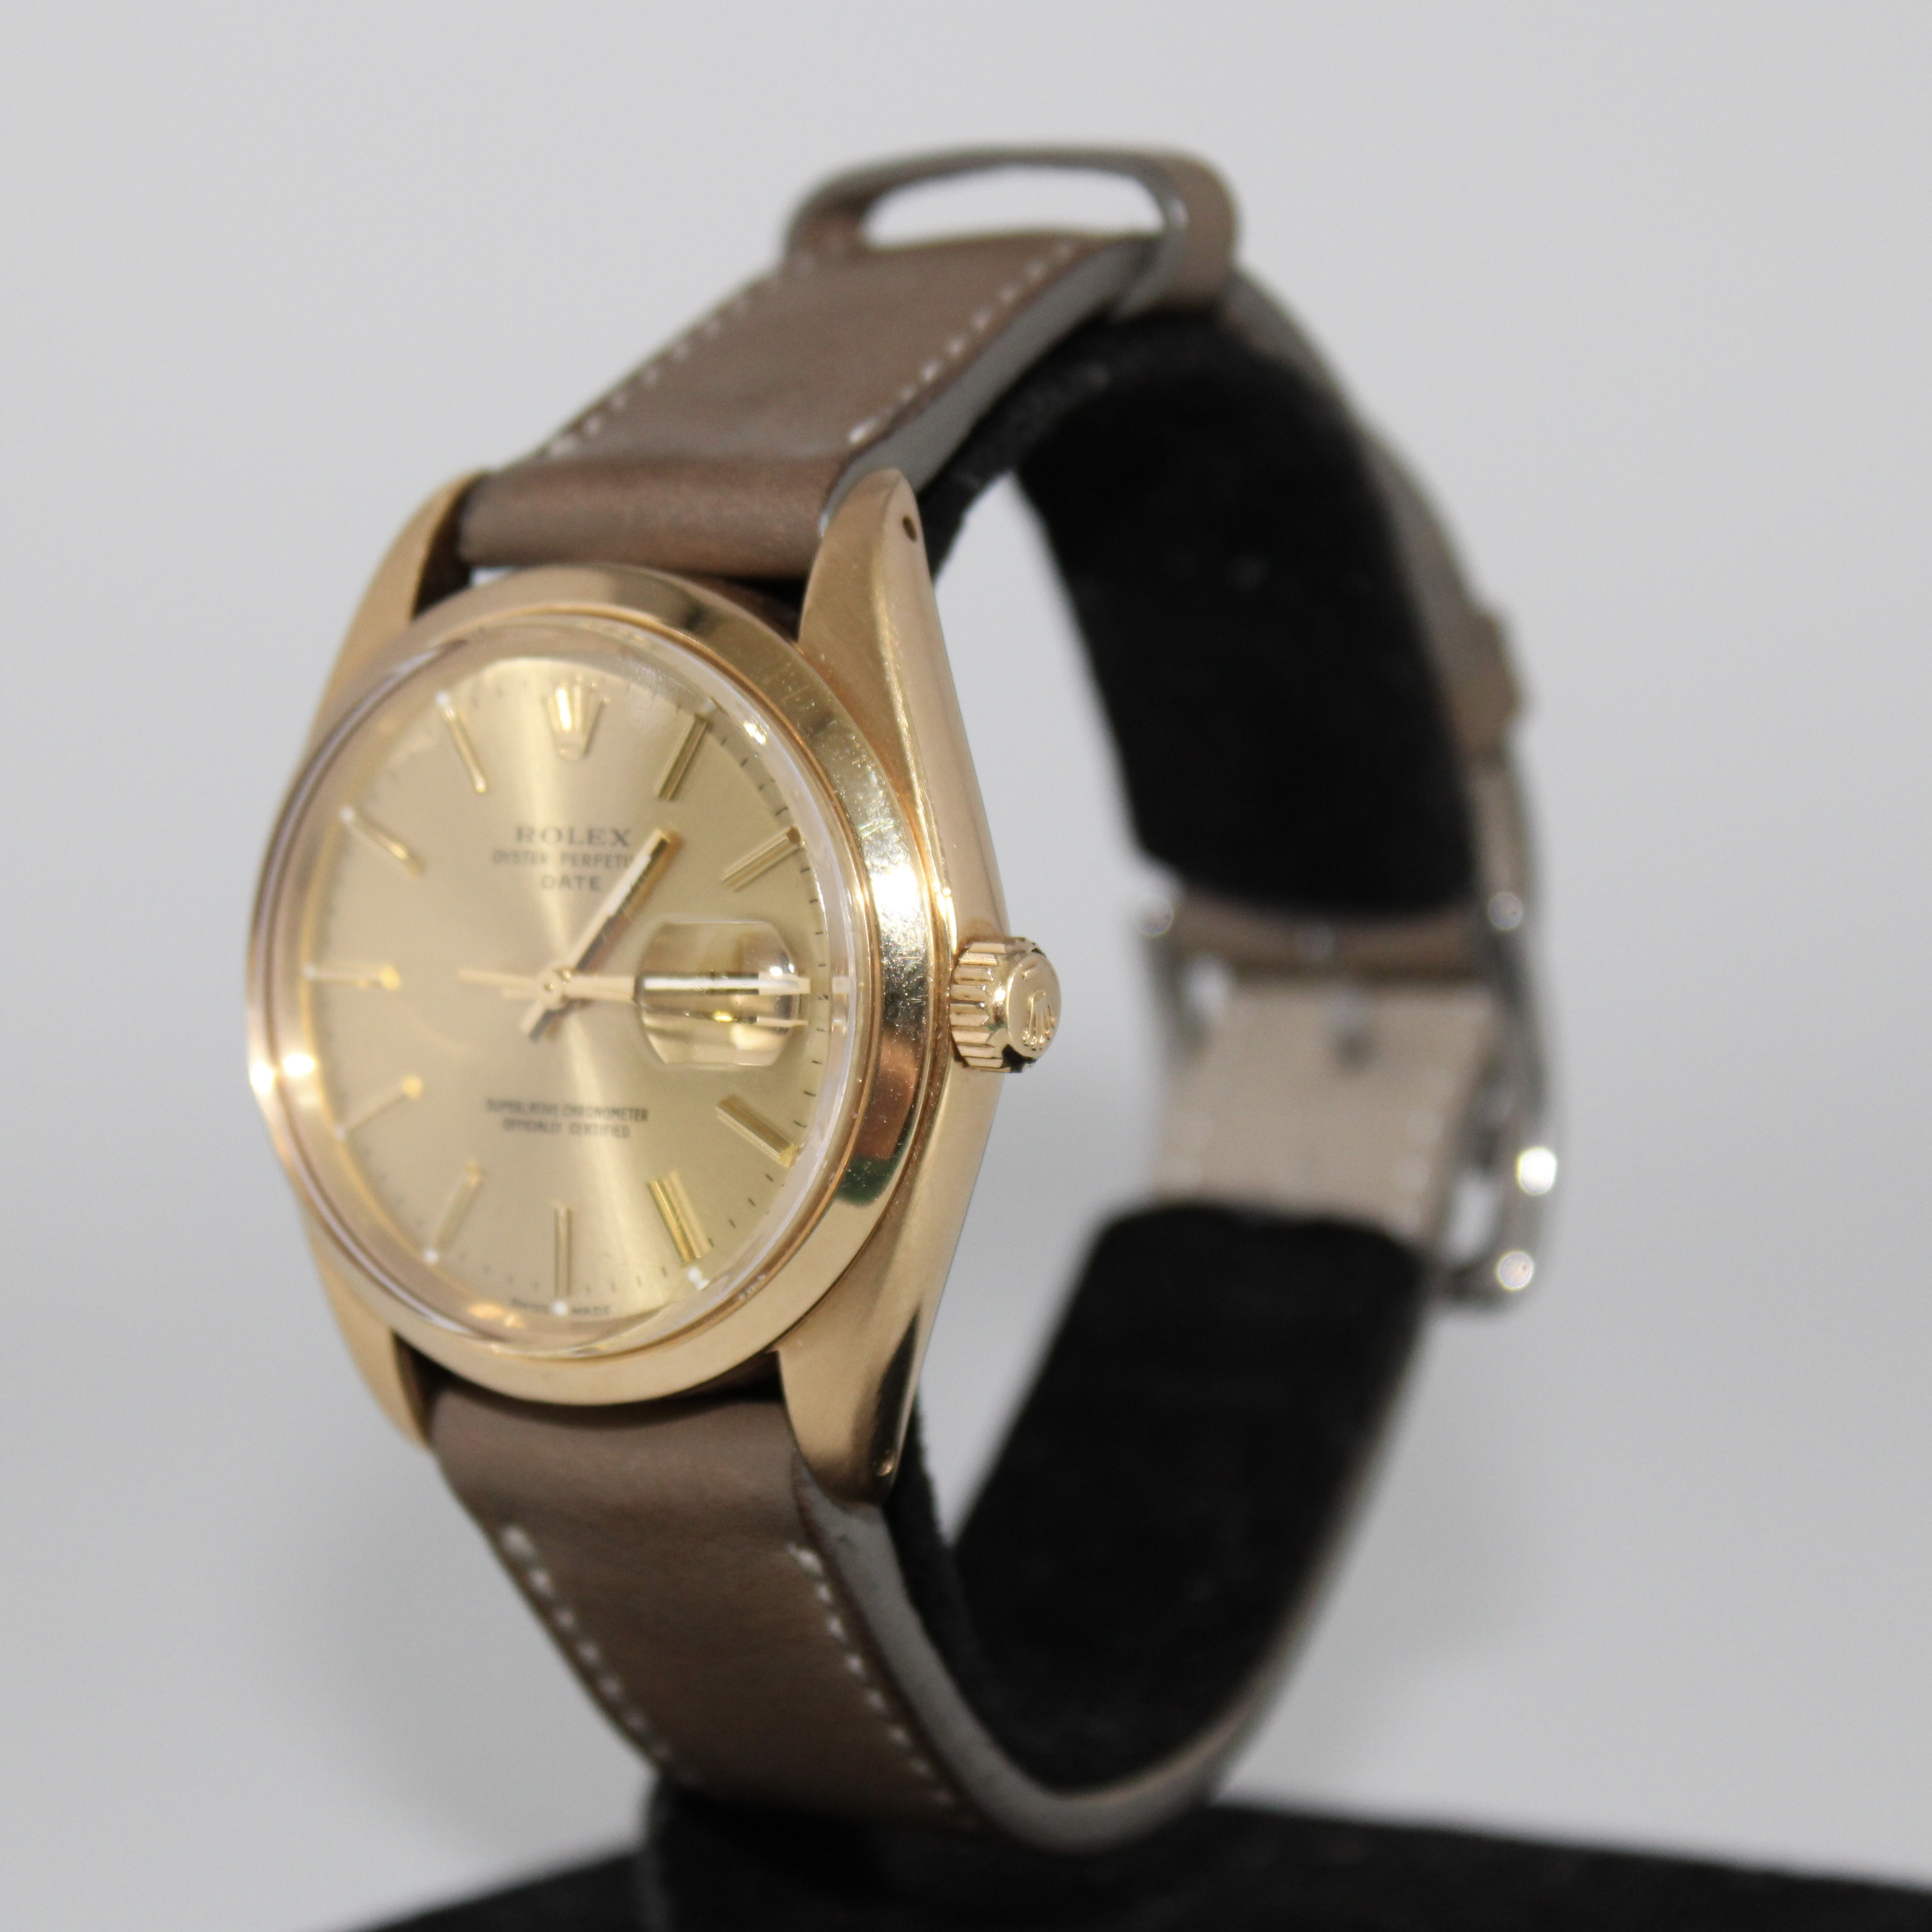 Rolex Oyster Date 18ct Ref 1500 - Image 2 of 6